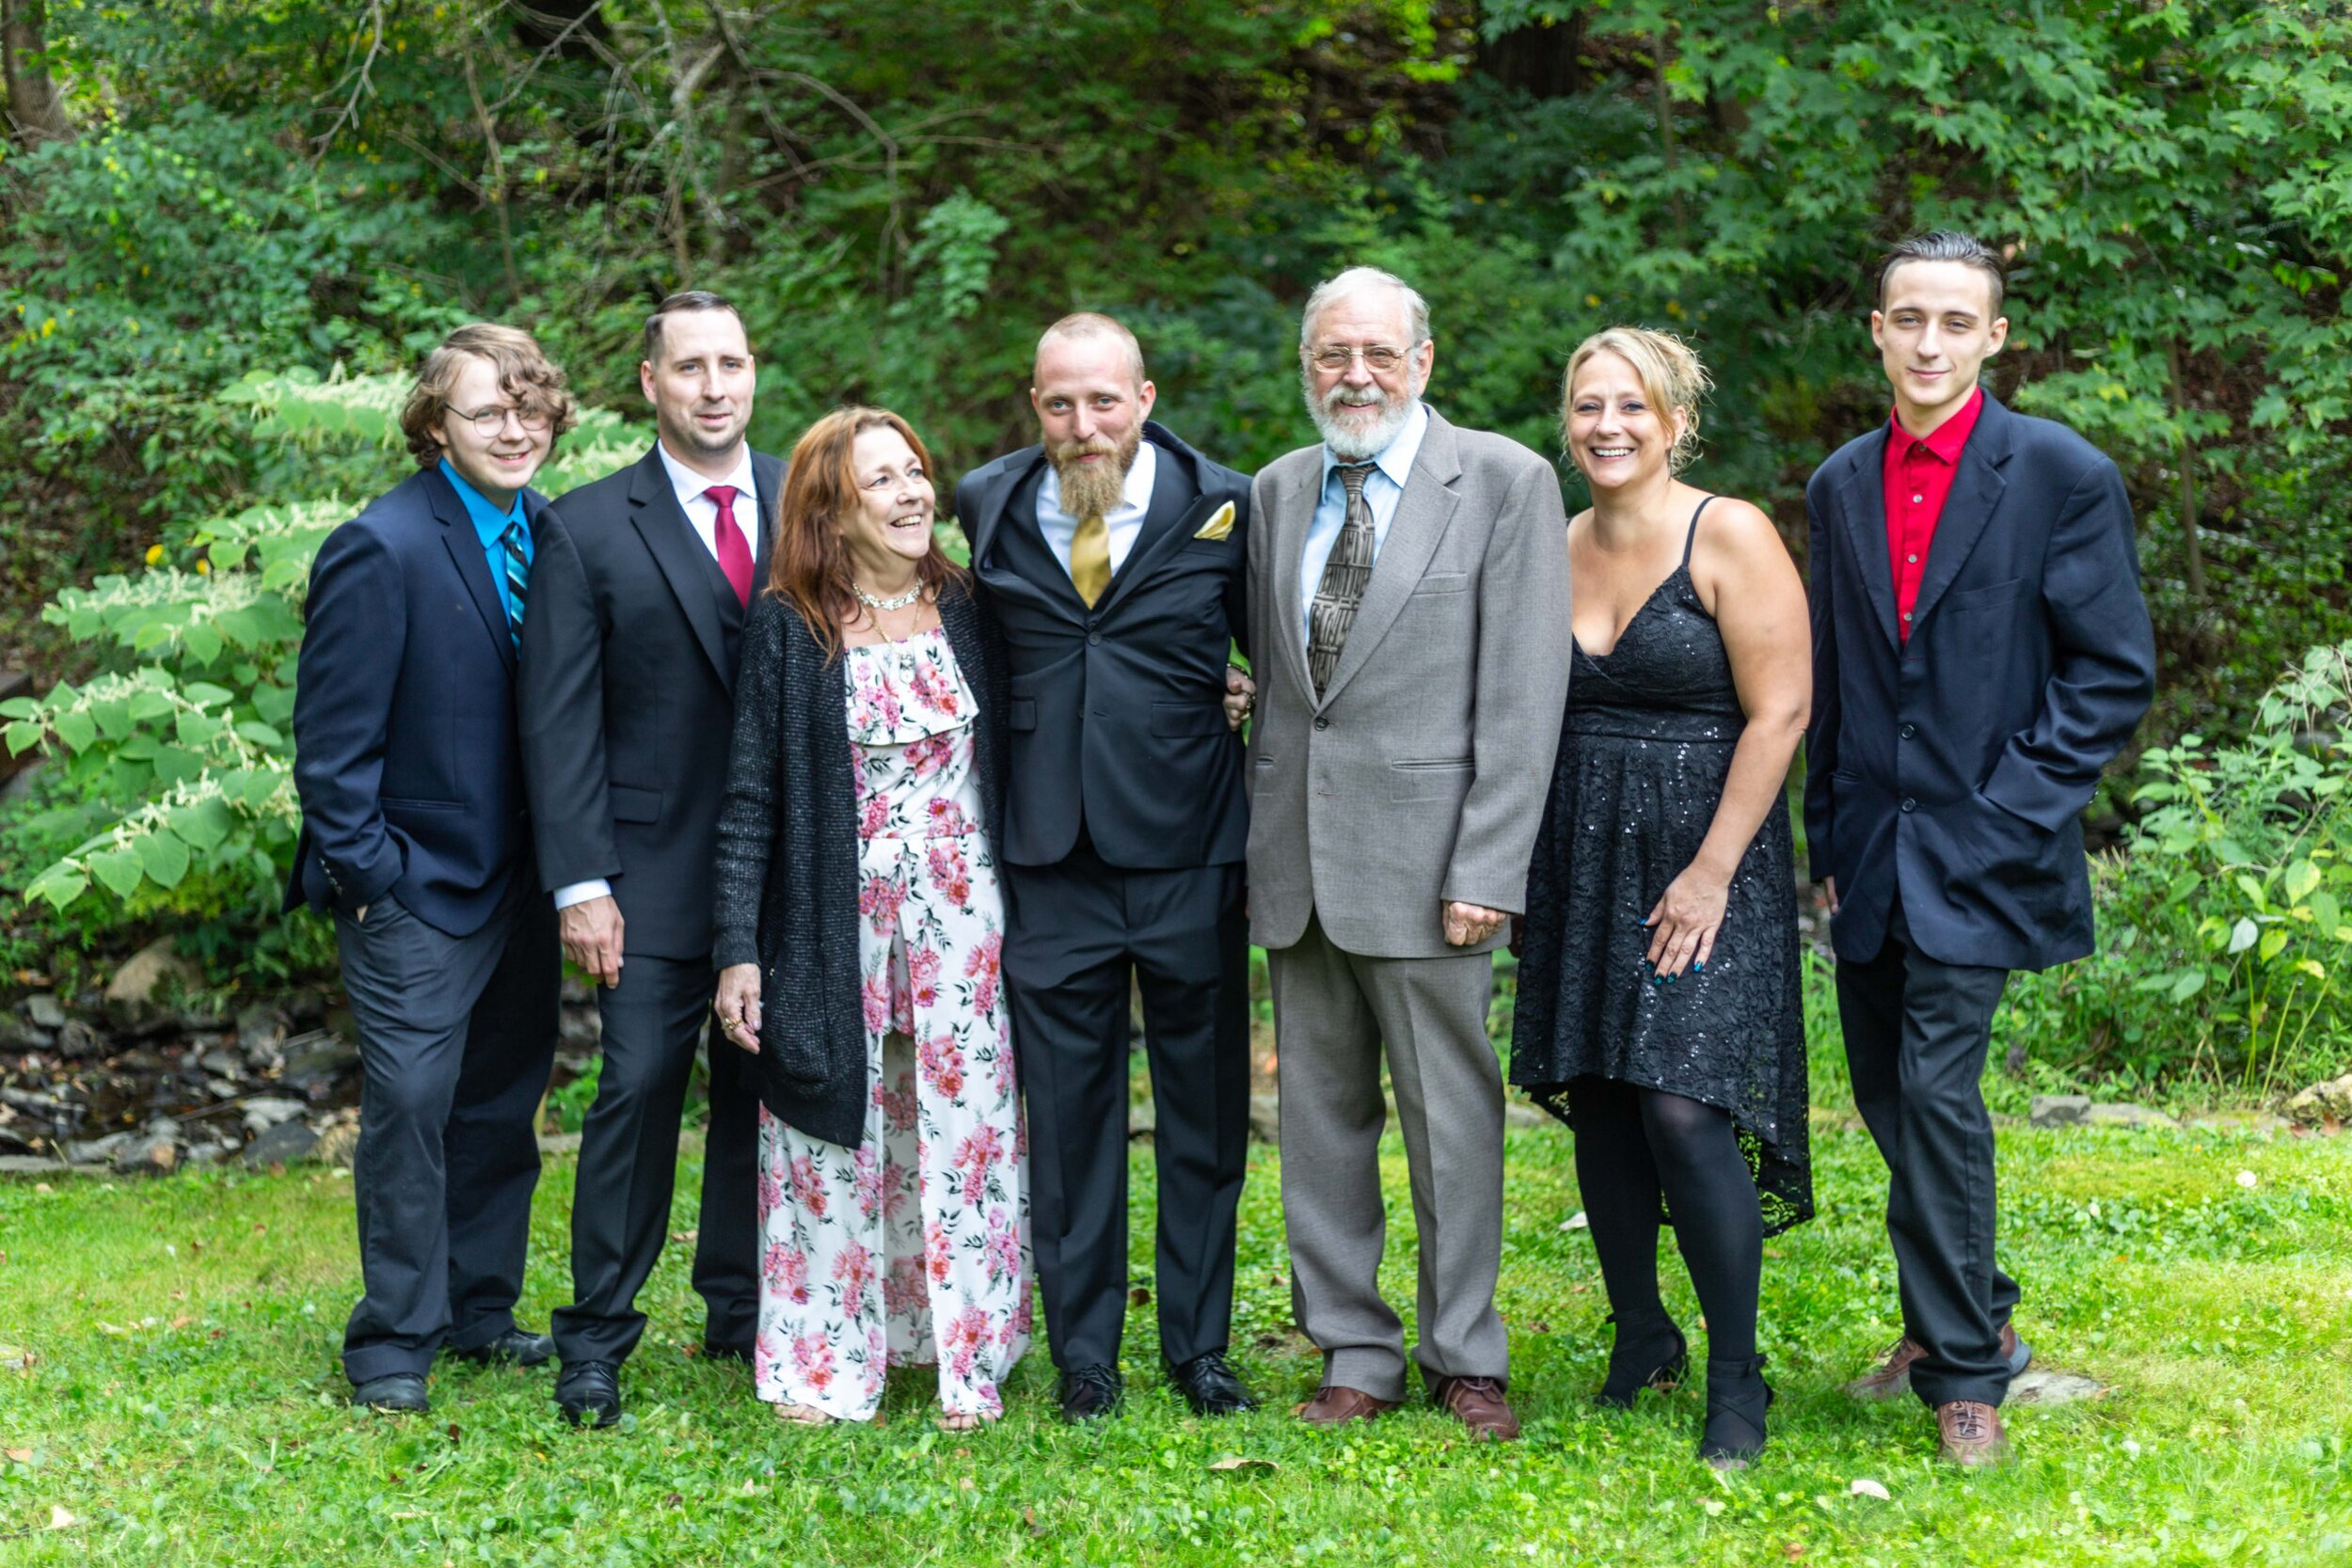 Backyard Homebrew Wedding in Branchville NJ by Dan Schenker Photography-13.jpg